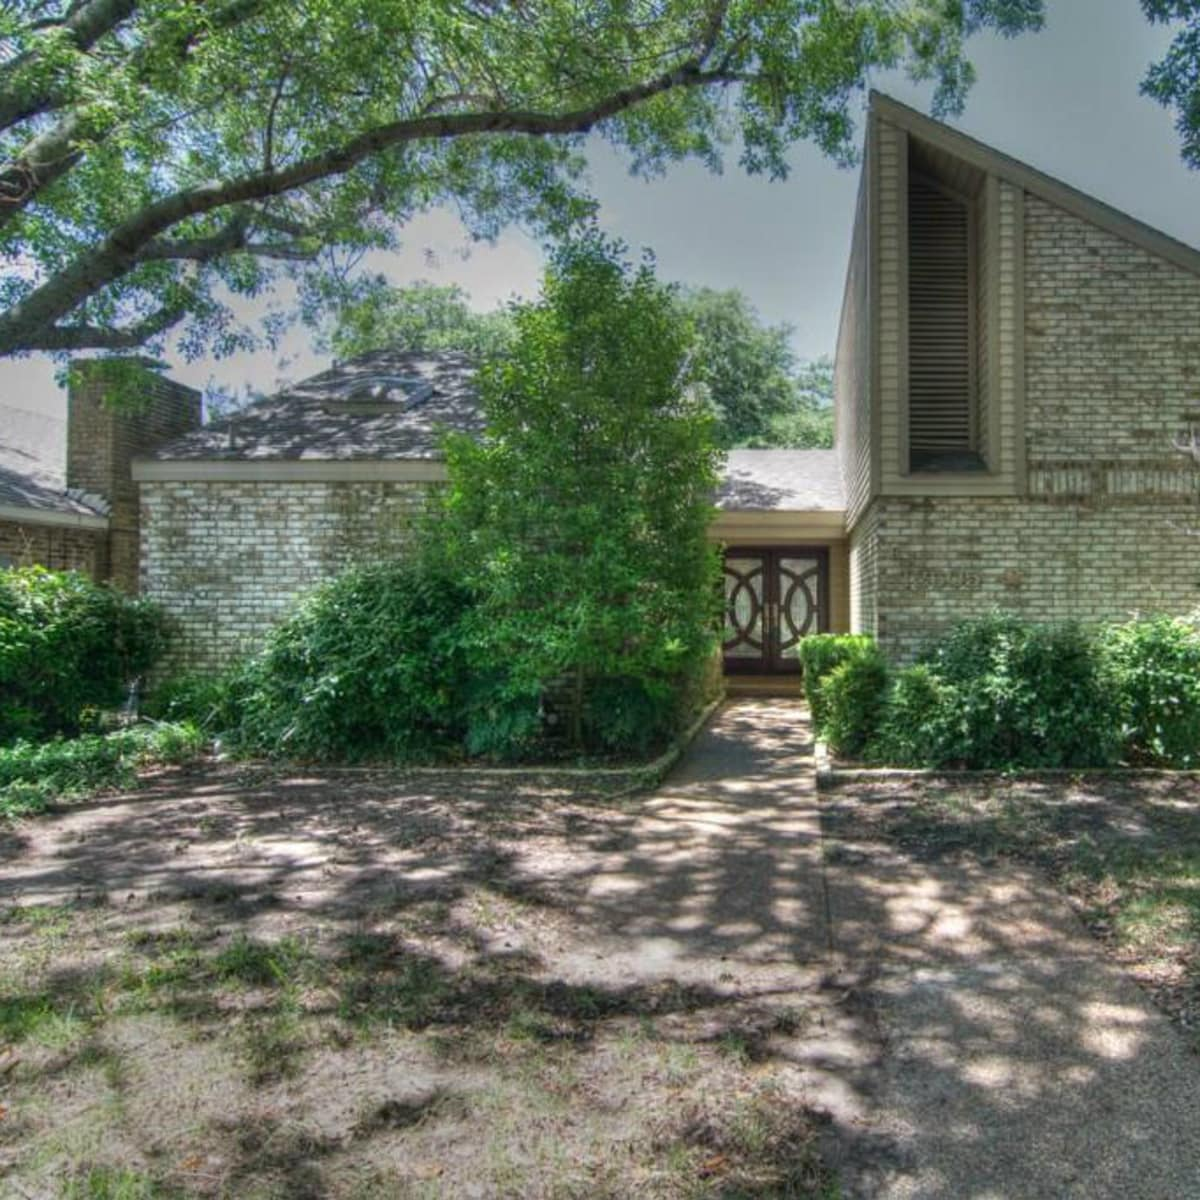 18605 Crownover Ct house for sale in Dallas